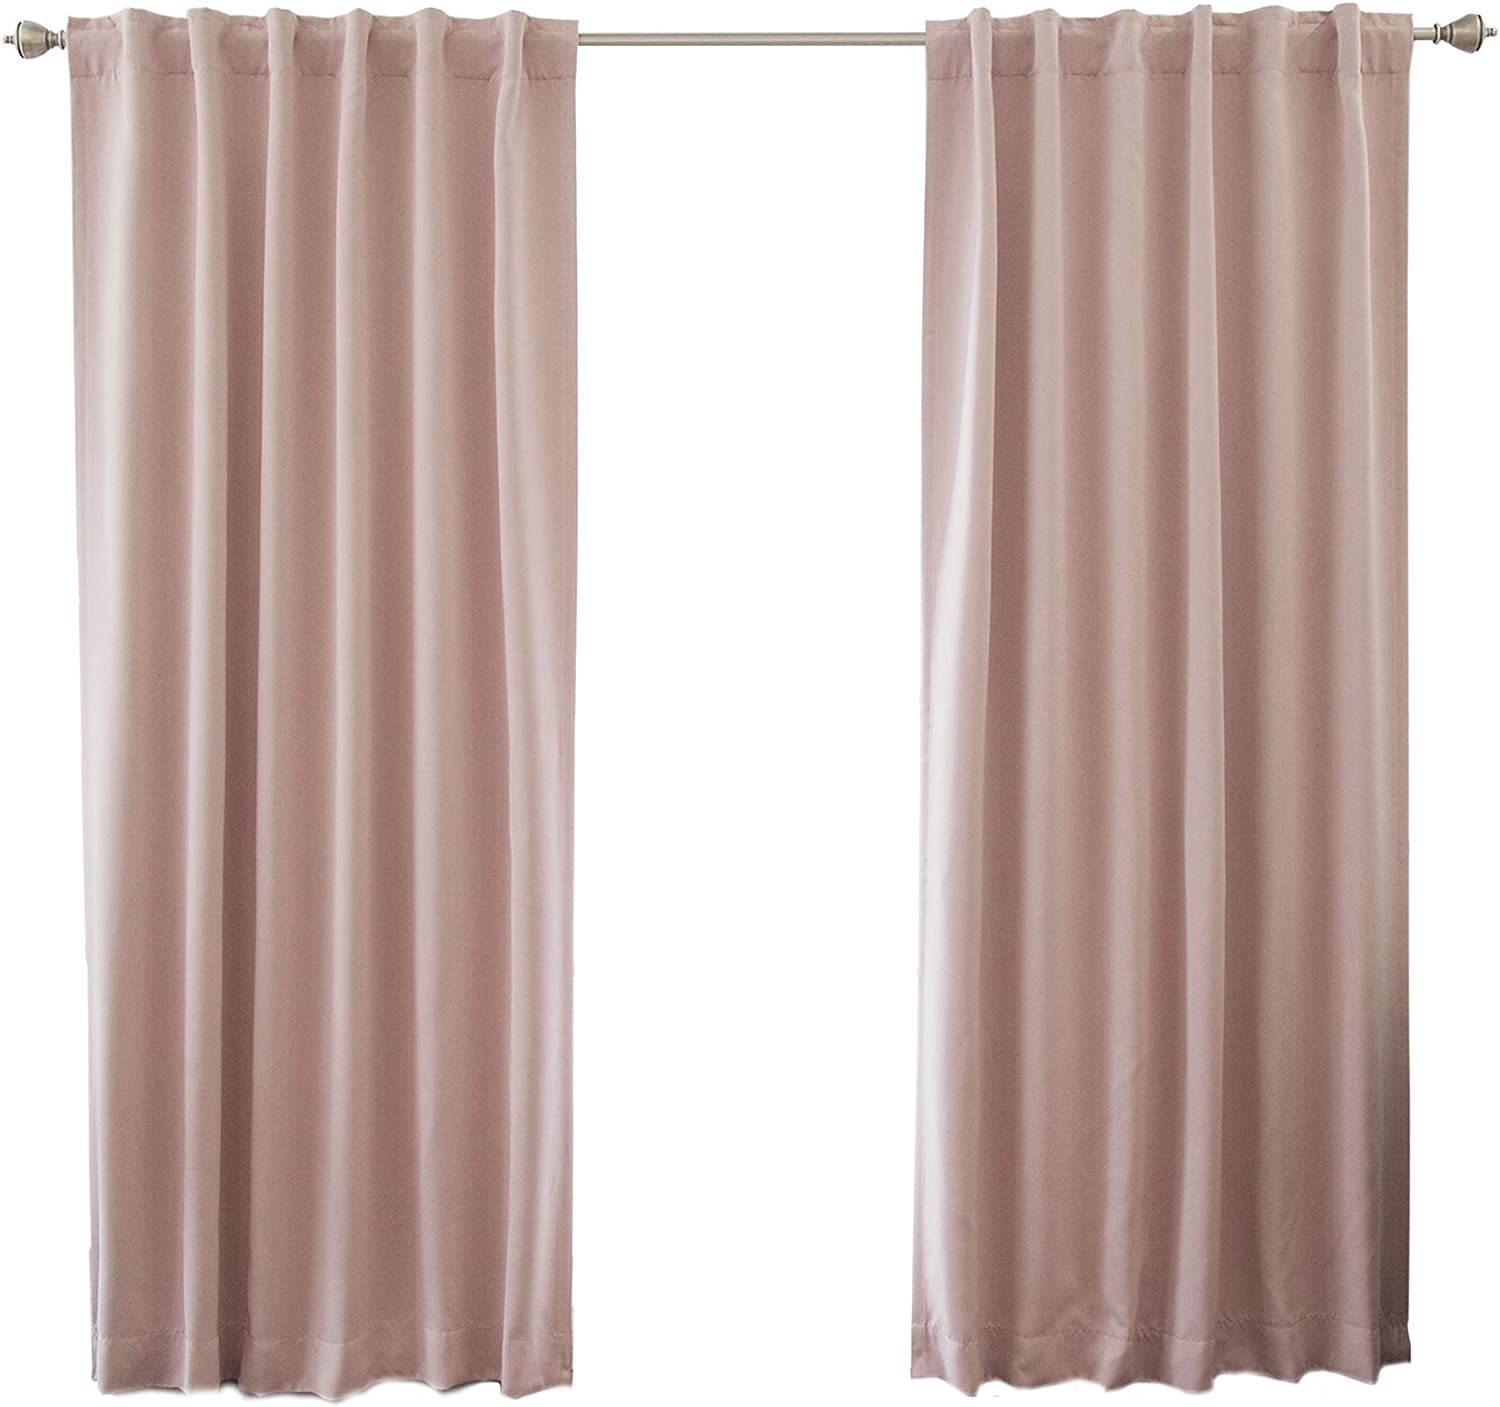 "Best Home Fashion Thermal Insulated Blackout Curtains - Back Tab/Rod Pocket - 52"" W x 84"" L - Dusty Pink (Set of 2 Panels)"